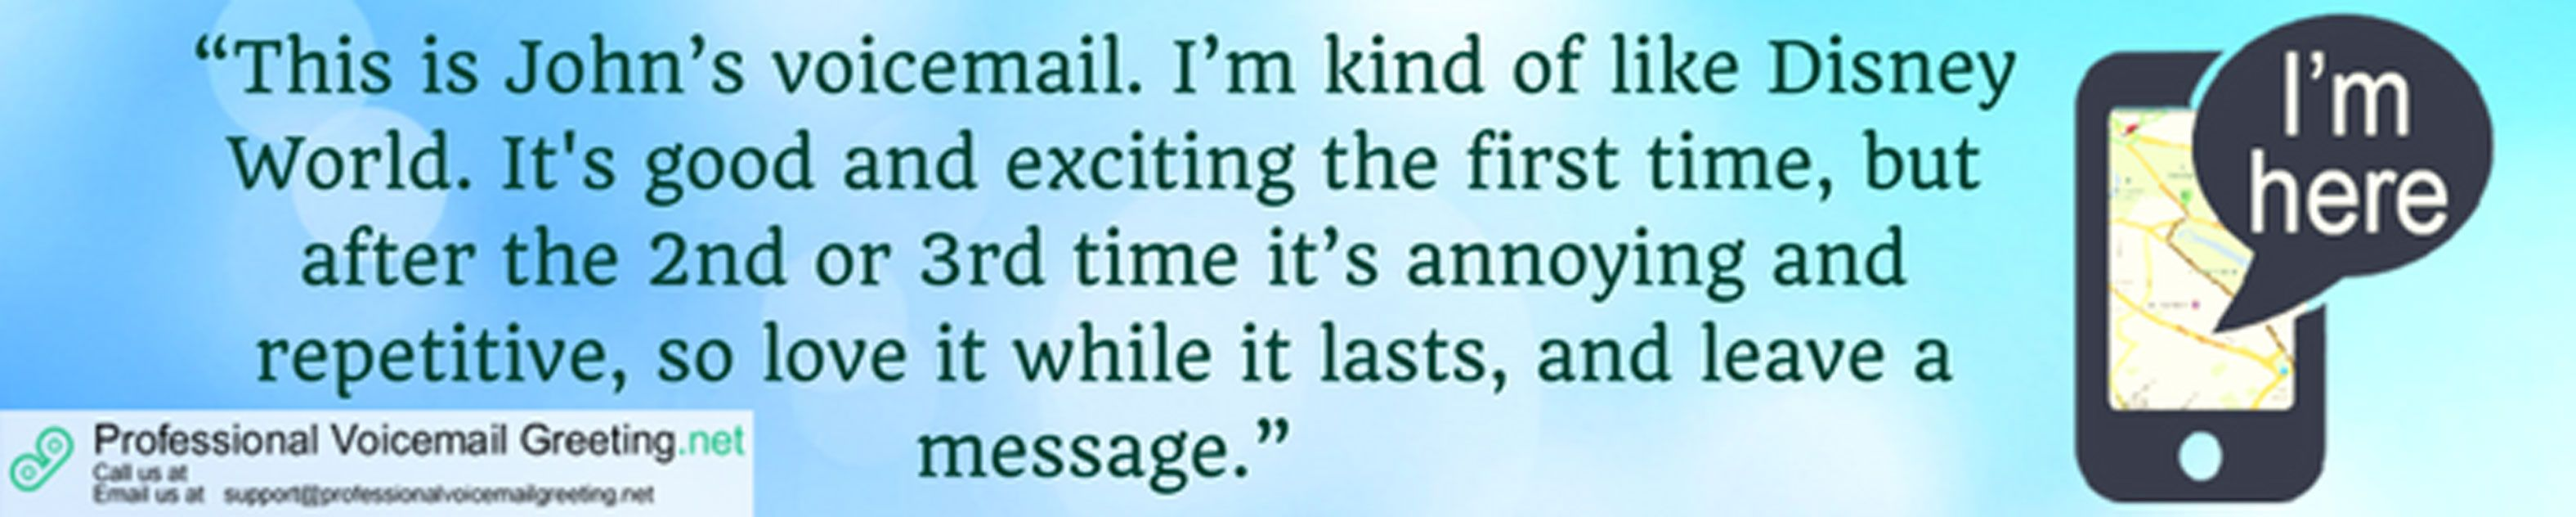 Funny voicemail greeting sample that will show you what this service funny voicemail greeting sample that will show you what this service can do for you m4hsunfo Image collections